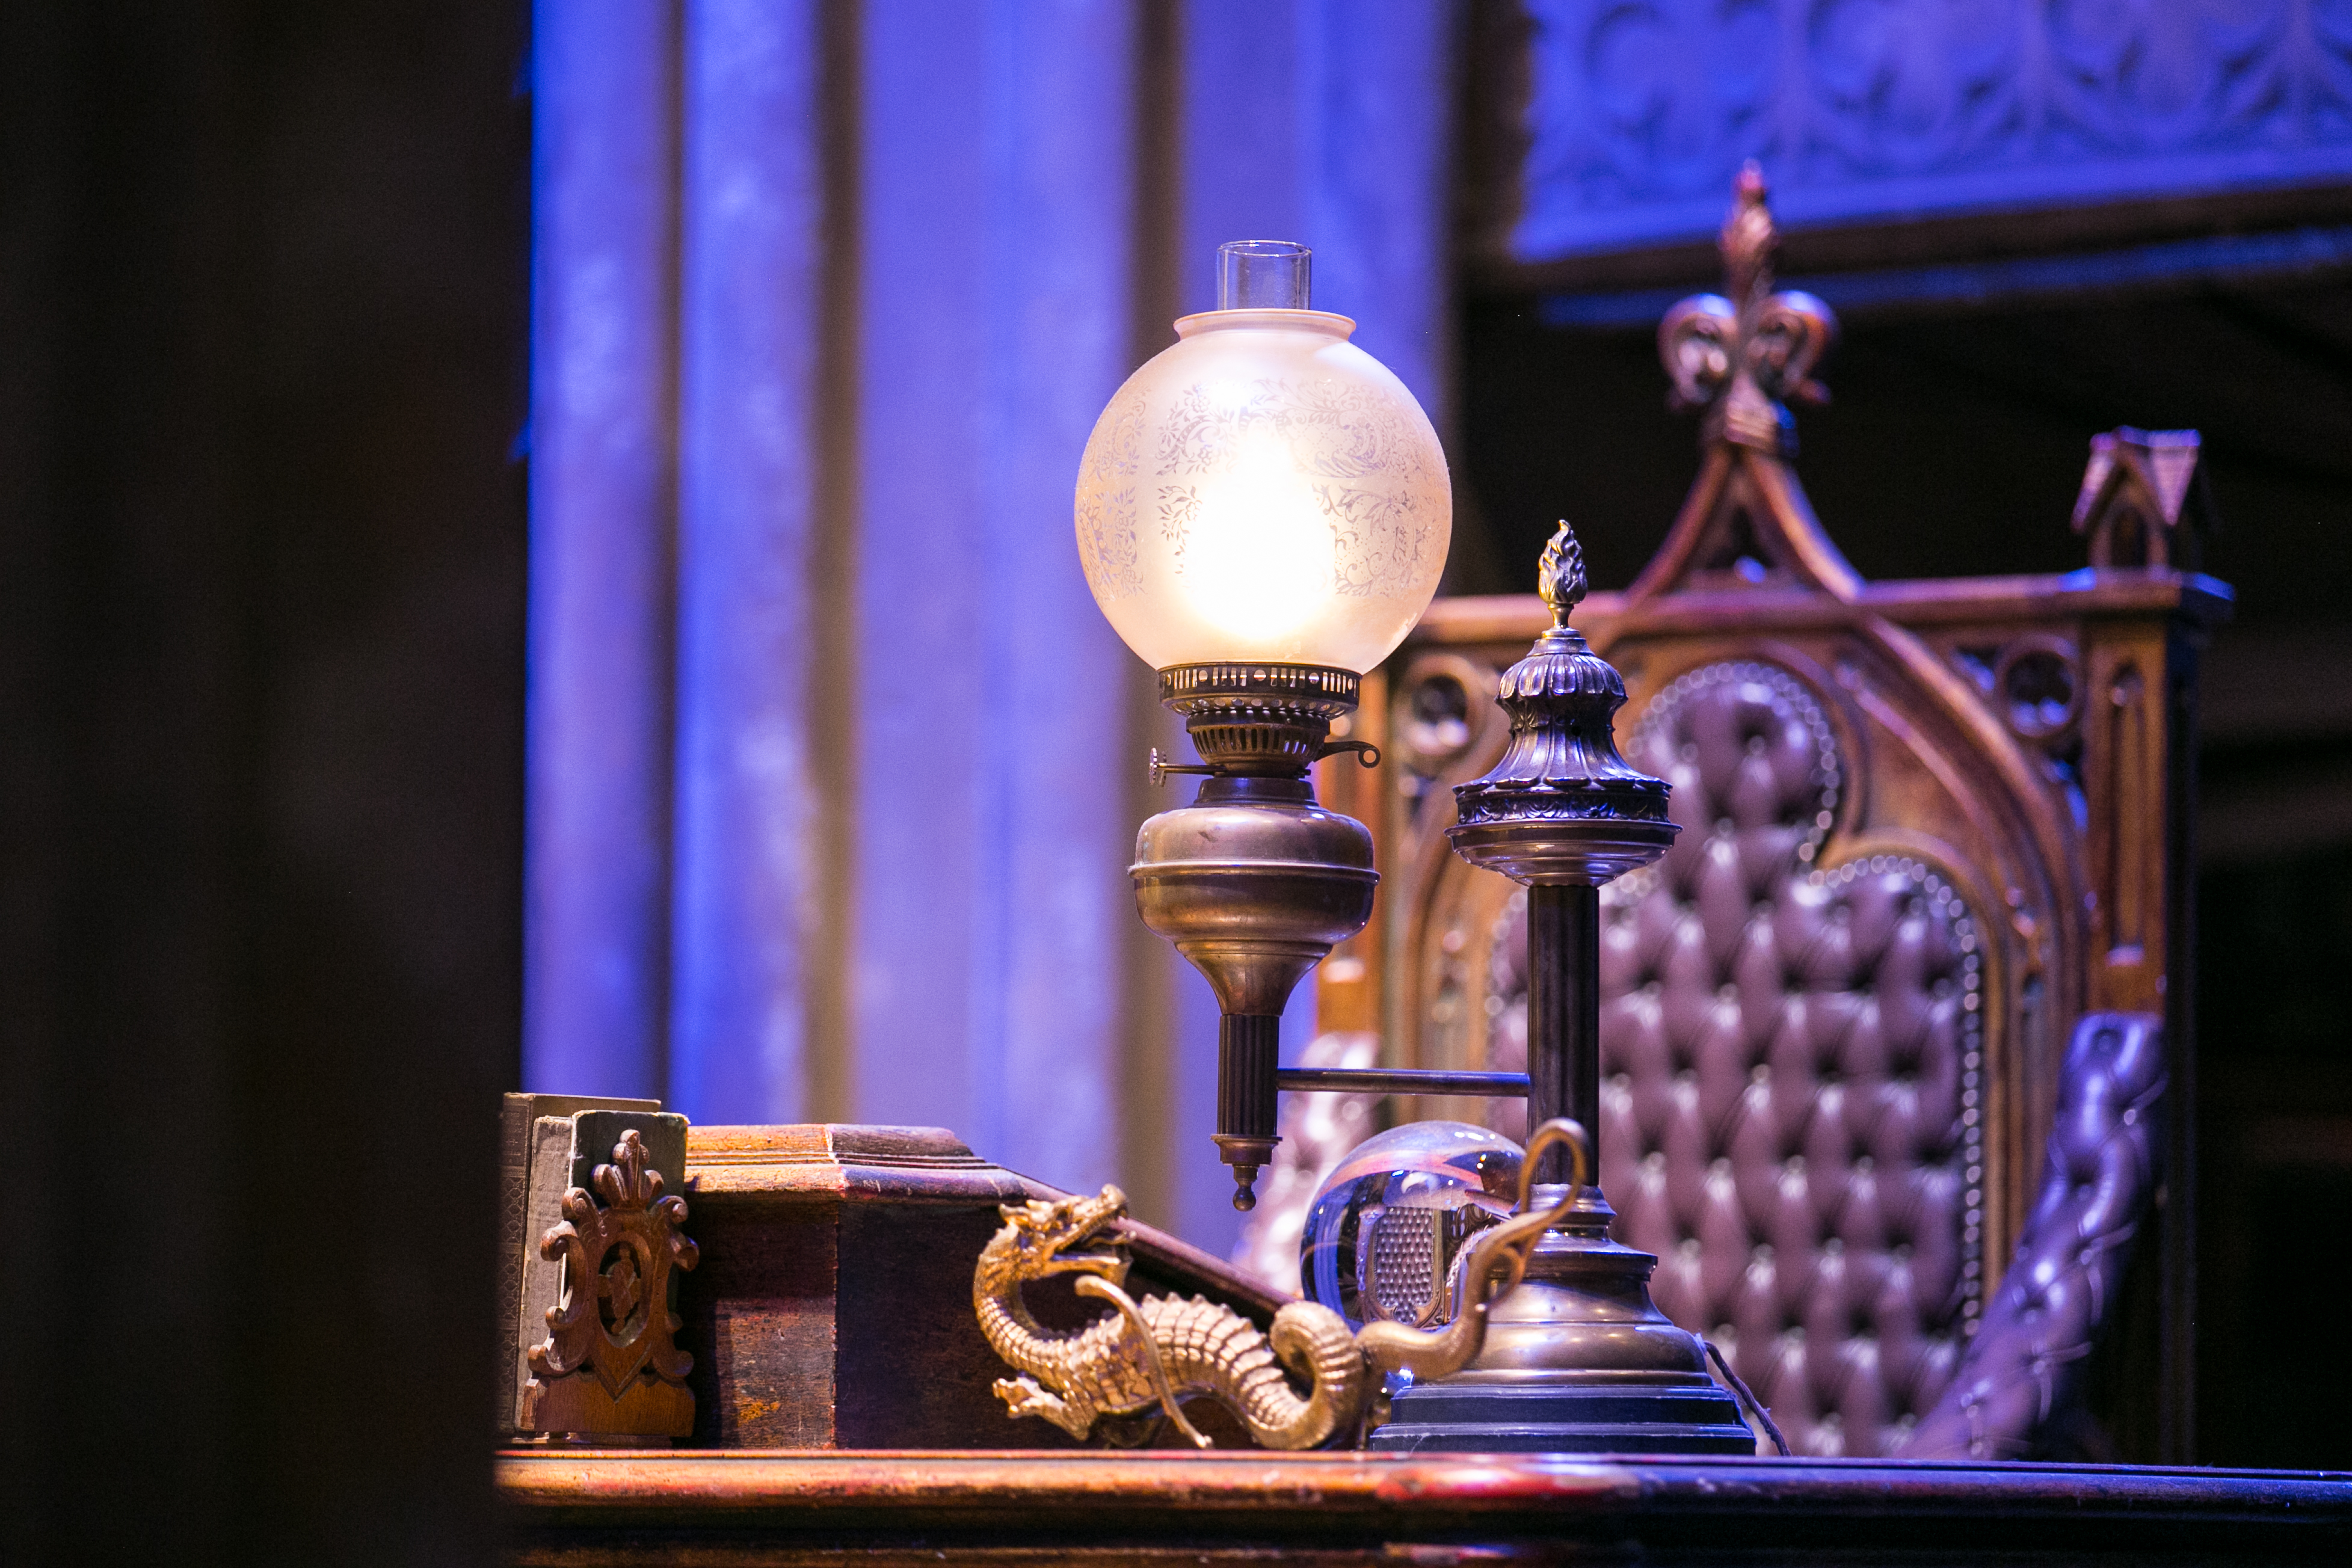 harry-potter-studio-tour-dumbledore-desk-detail